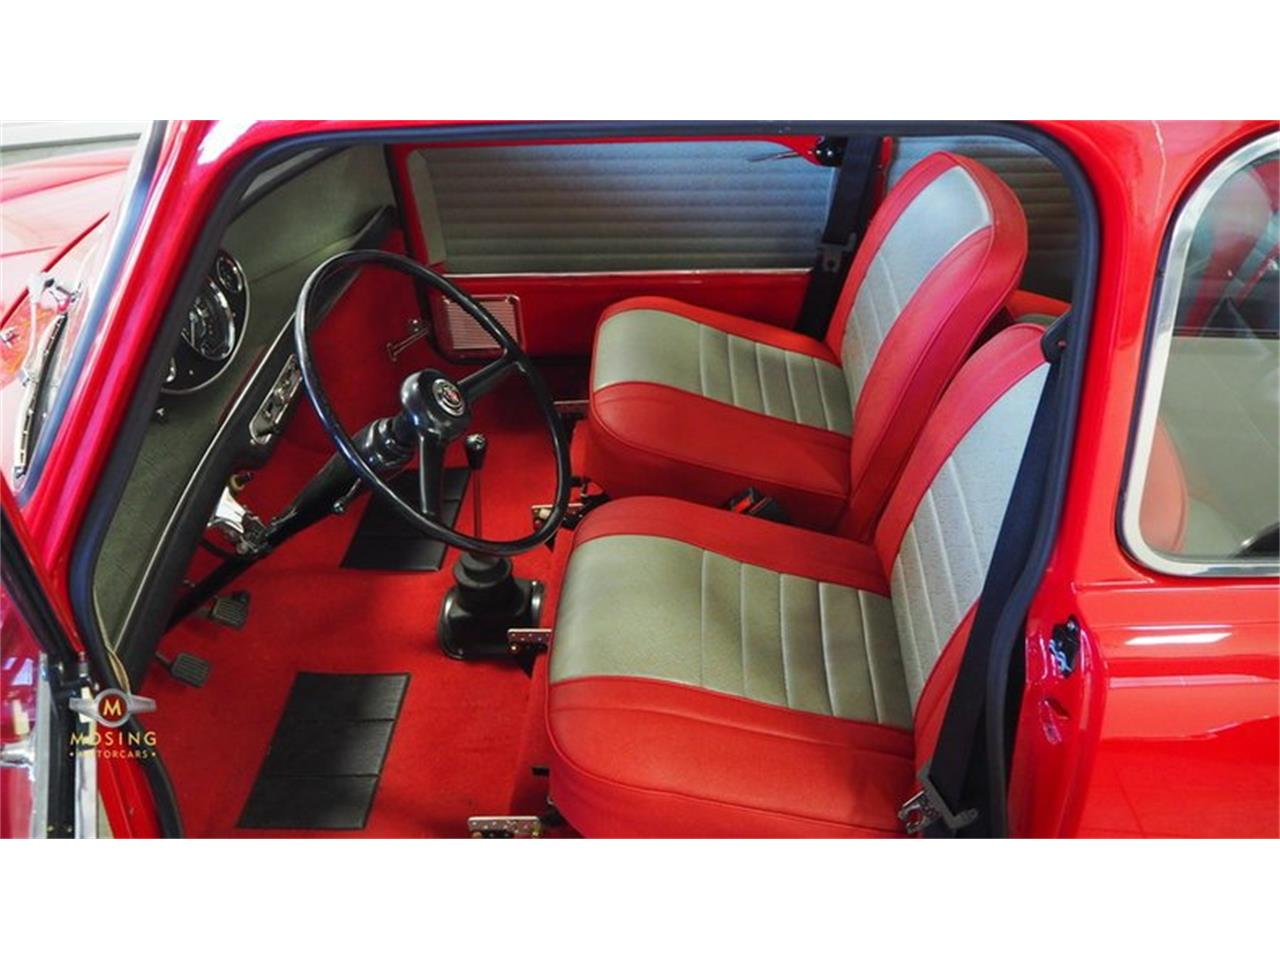 Large Picture of '66 Mini Cooper S located in Austin Texas Offered by Mosing Motorcars - Q2CQ